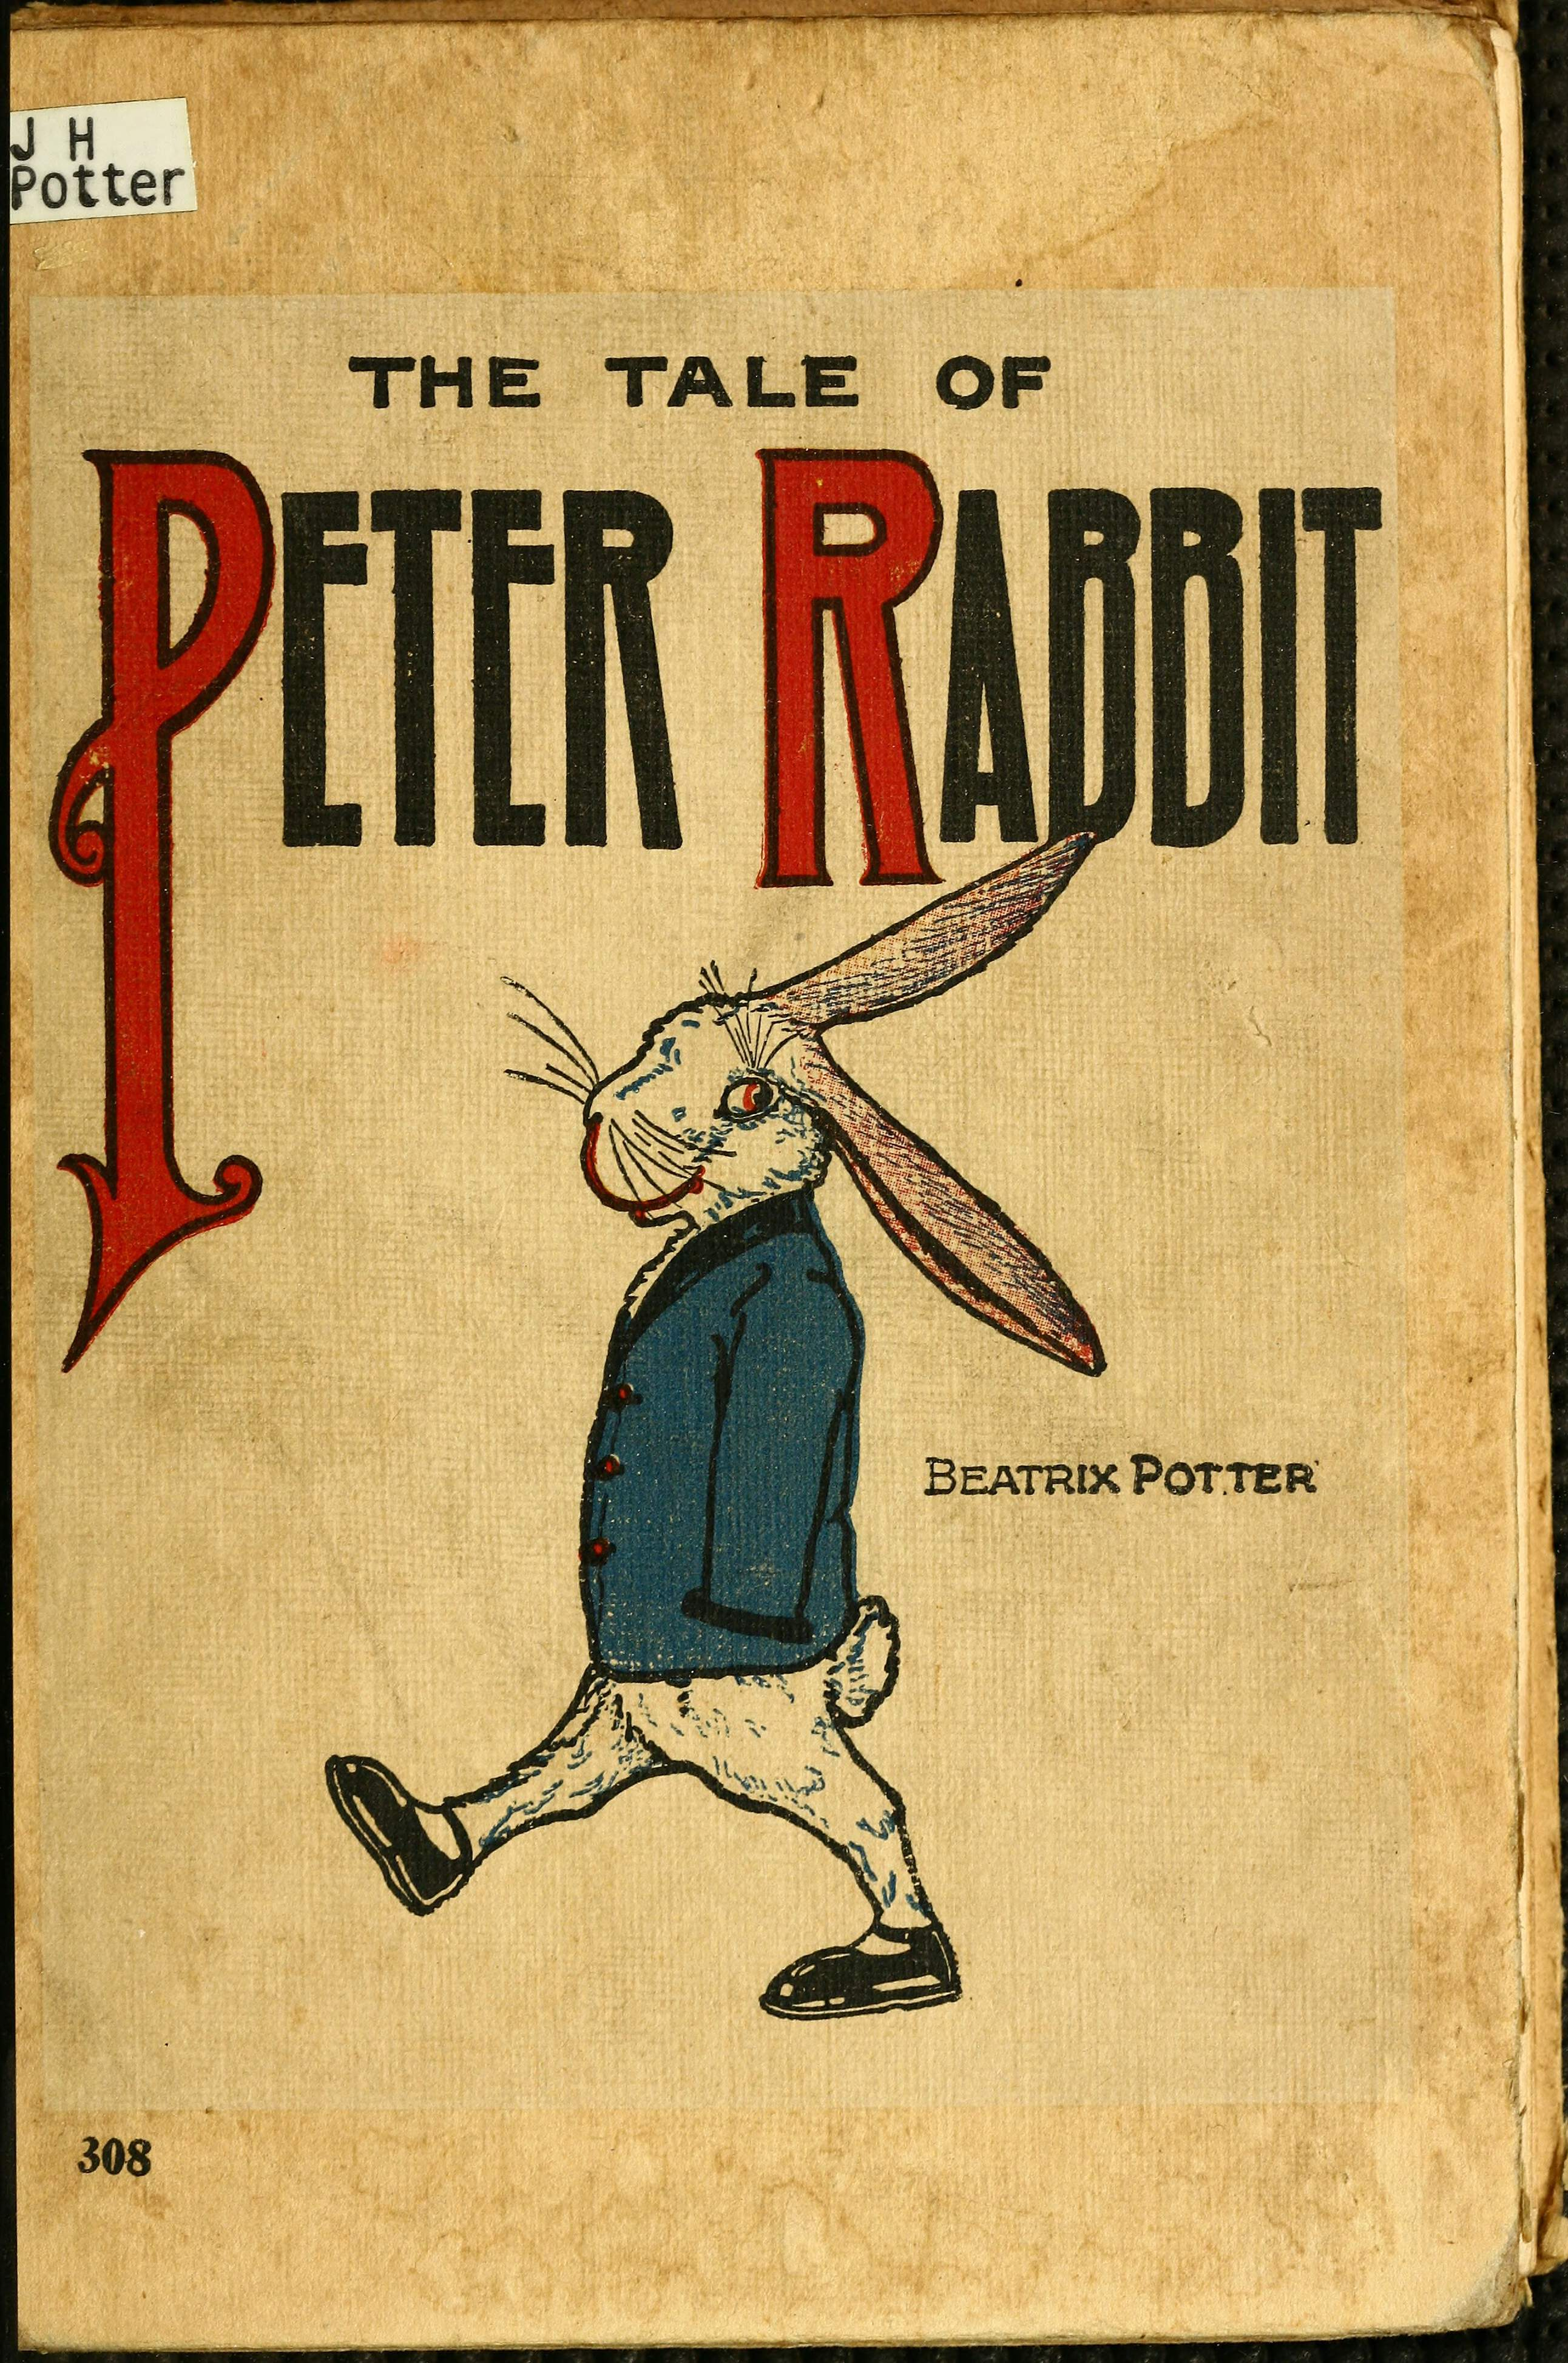 Cover Of Fashion Magazine With Daga Ziober December 2011: The Tale Of Peter Rabbit—Cover